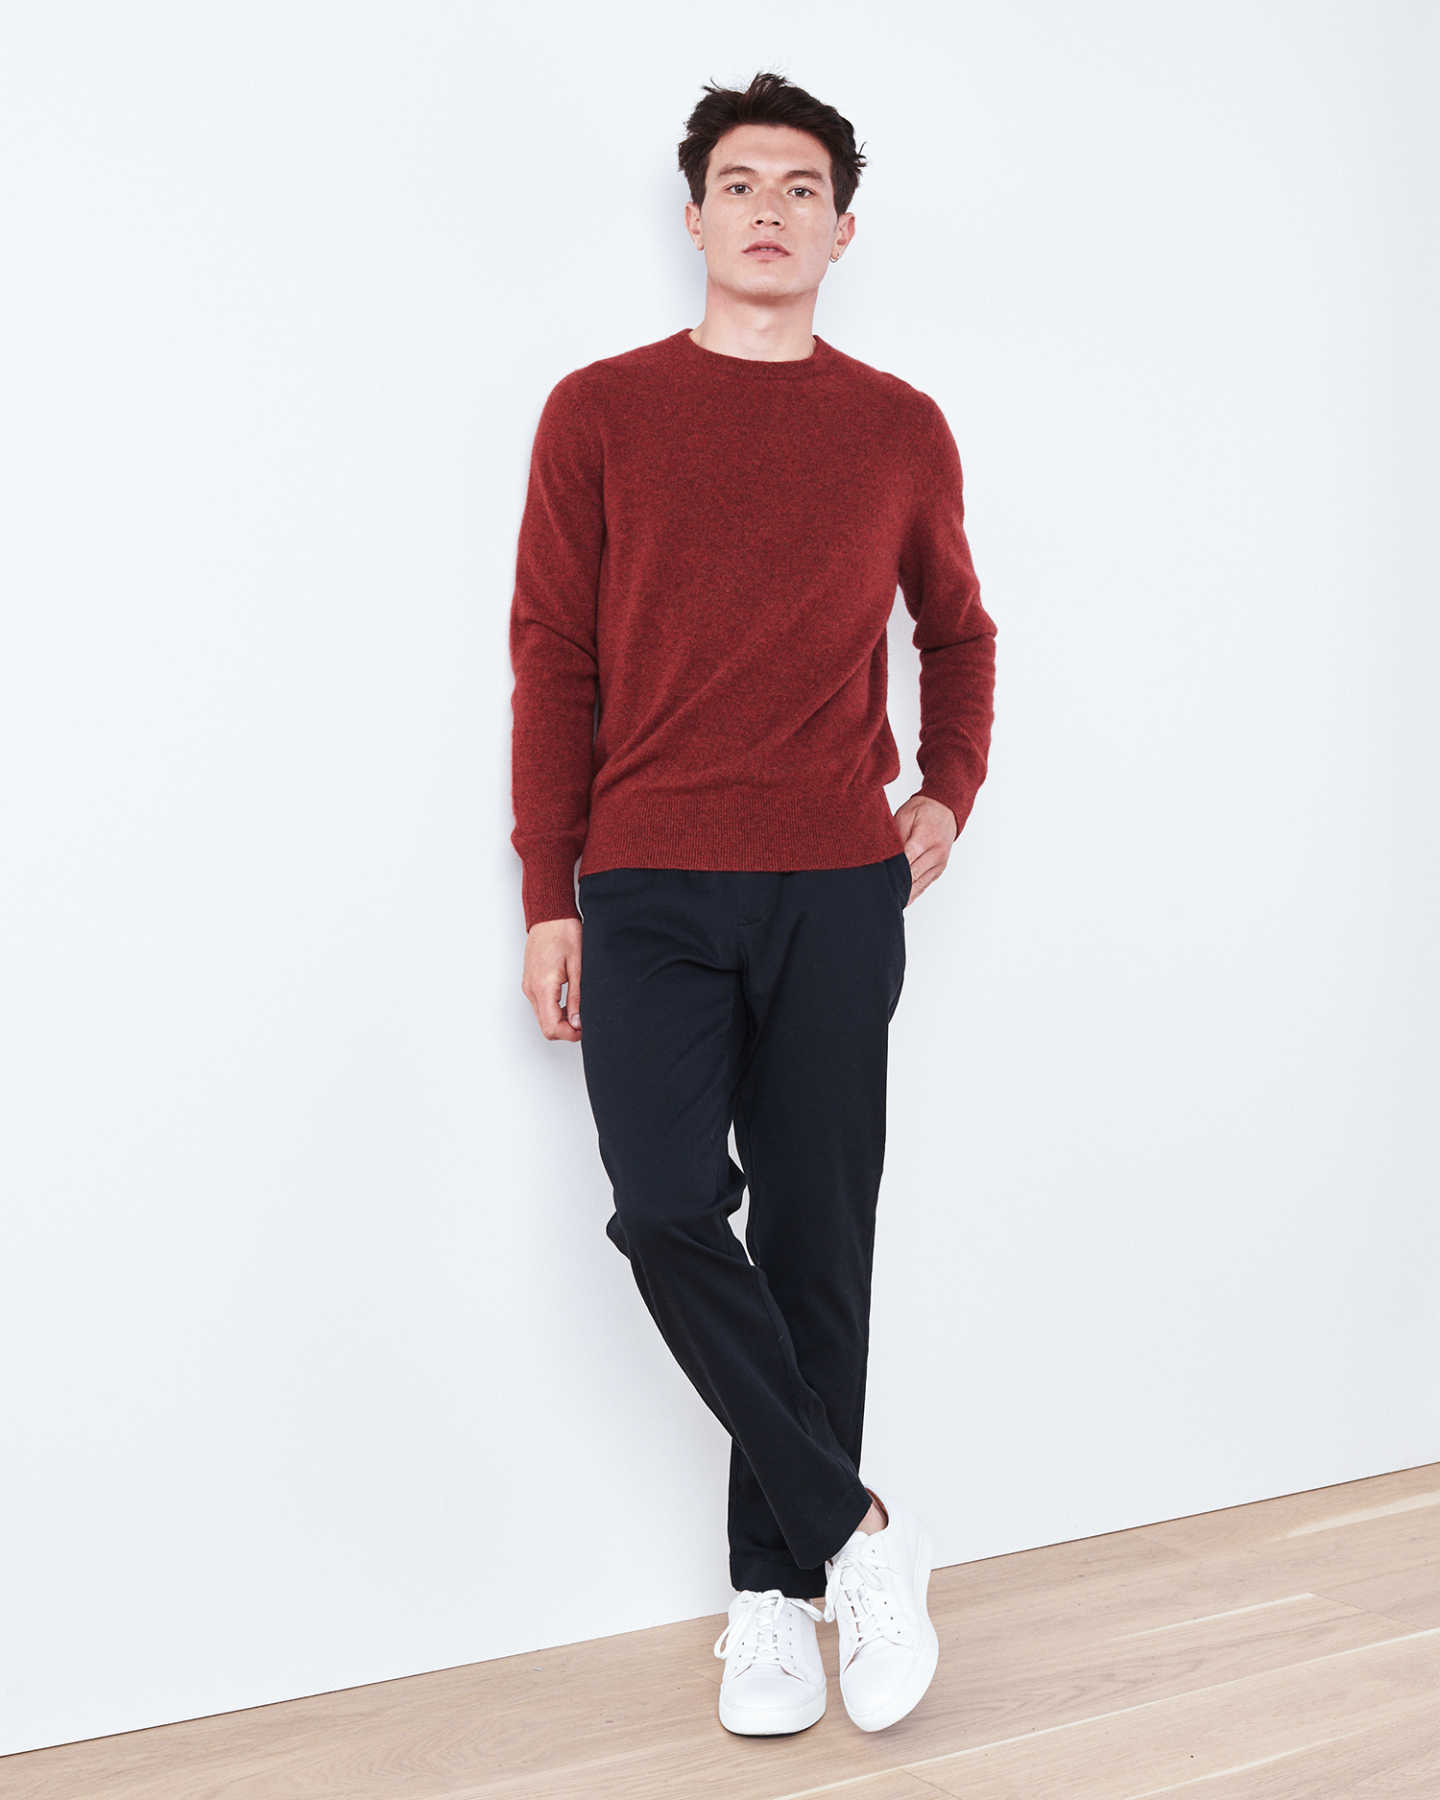 Man wearing red men's cashmere sweater against wall